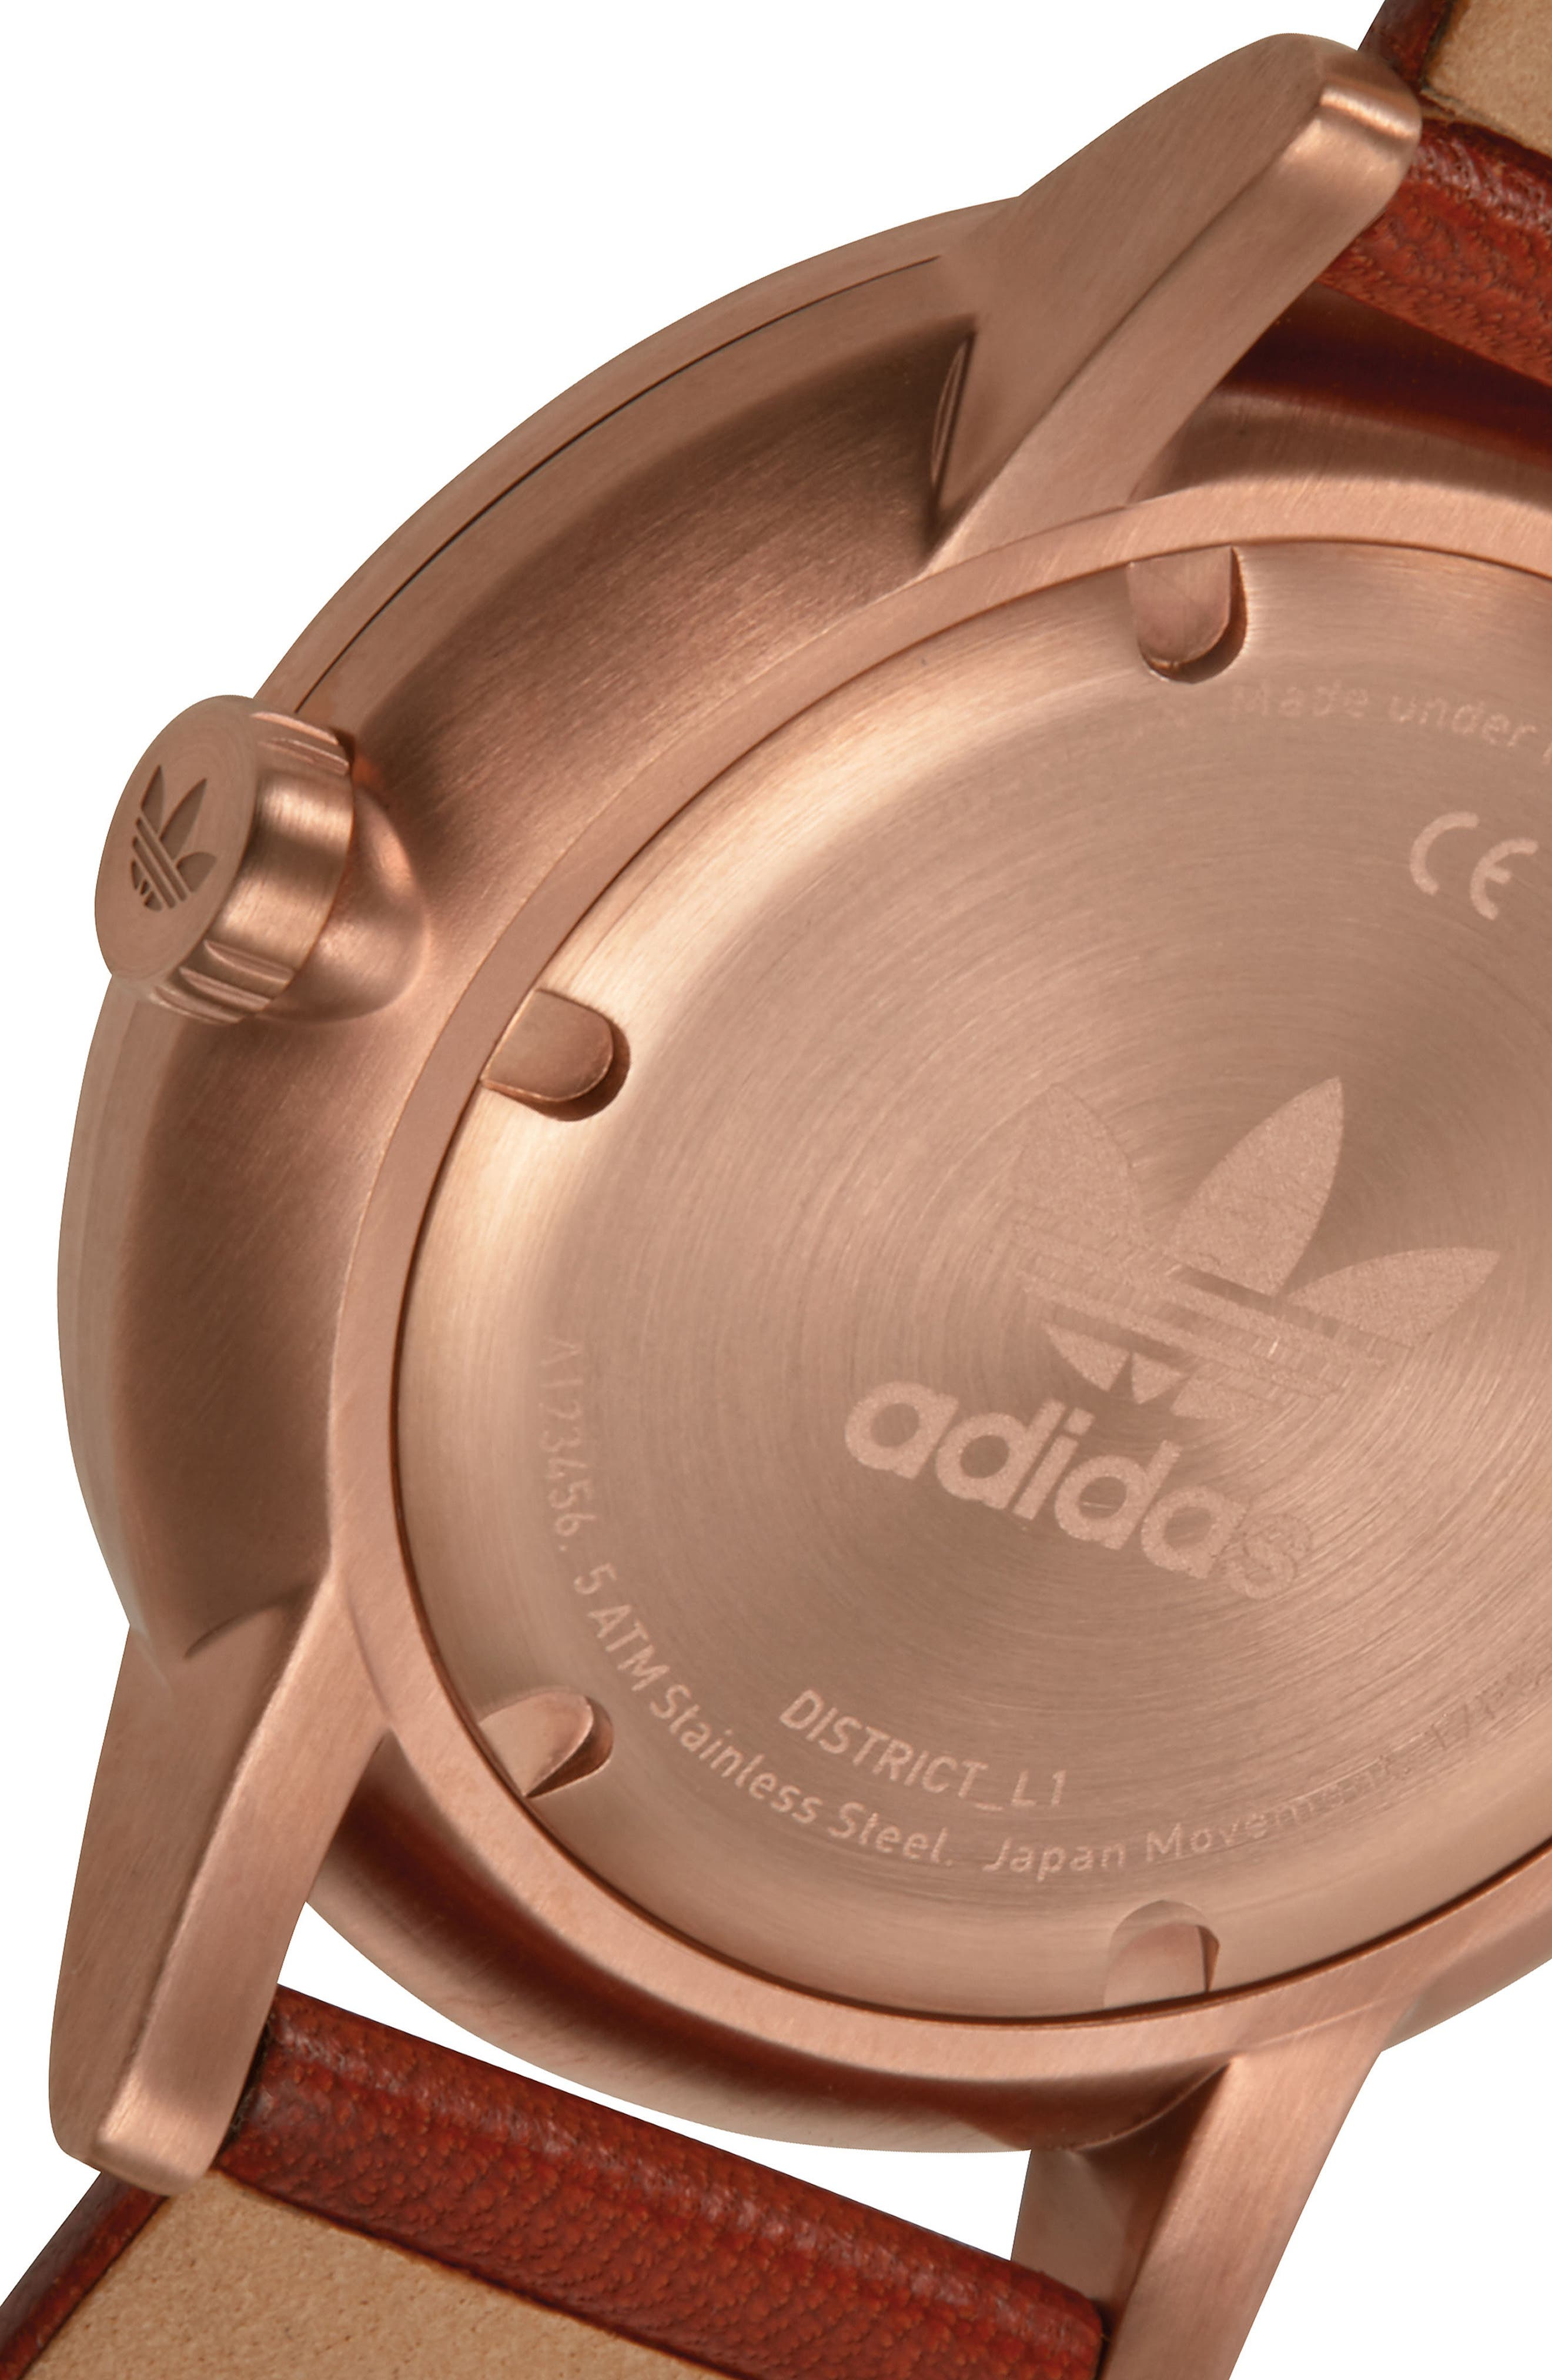 ADIDAS, District Leather Strap Watch, 40mm, Alternate thumbnail 4, color, SADDLE/ SLATE/ ROSE GOLD